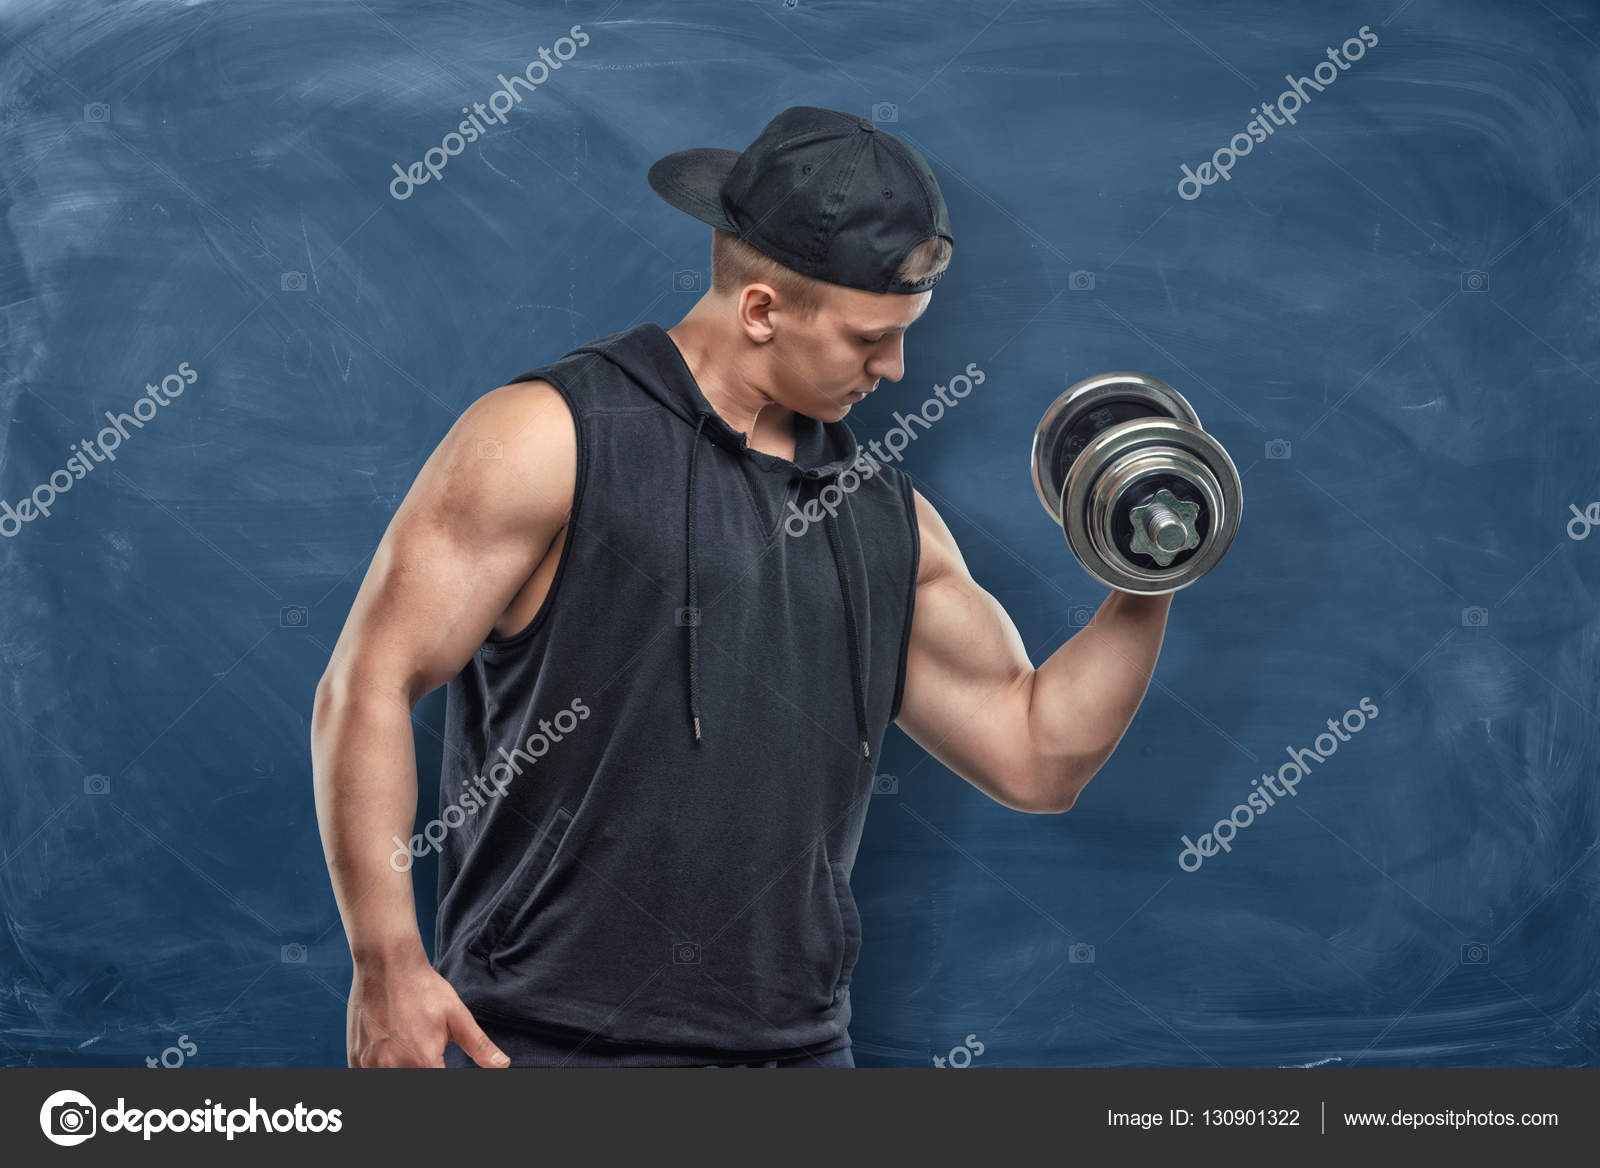 Muscled biceps